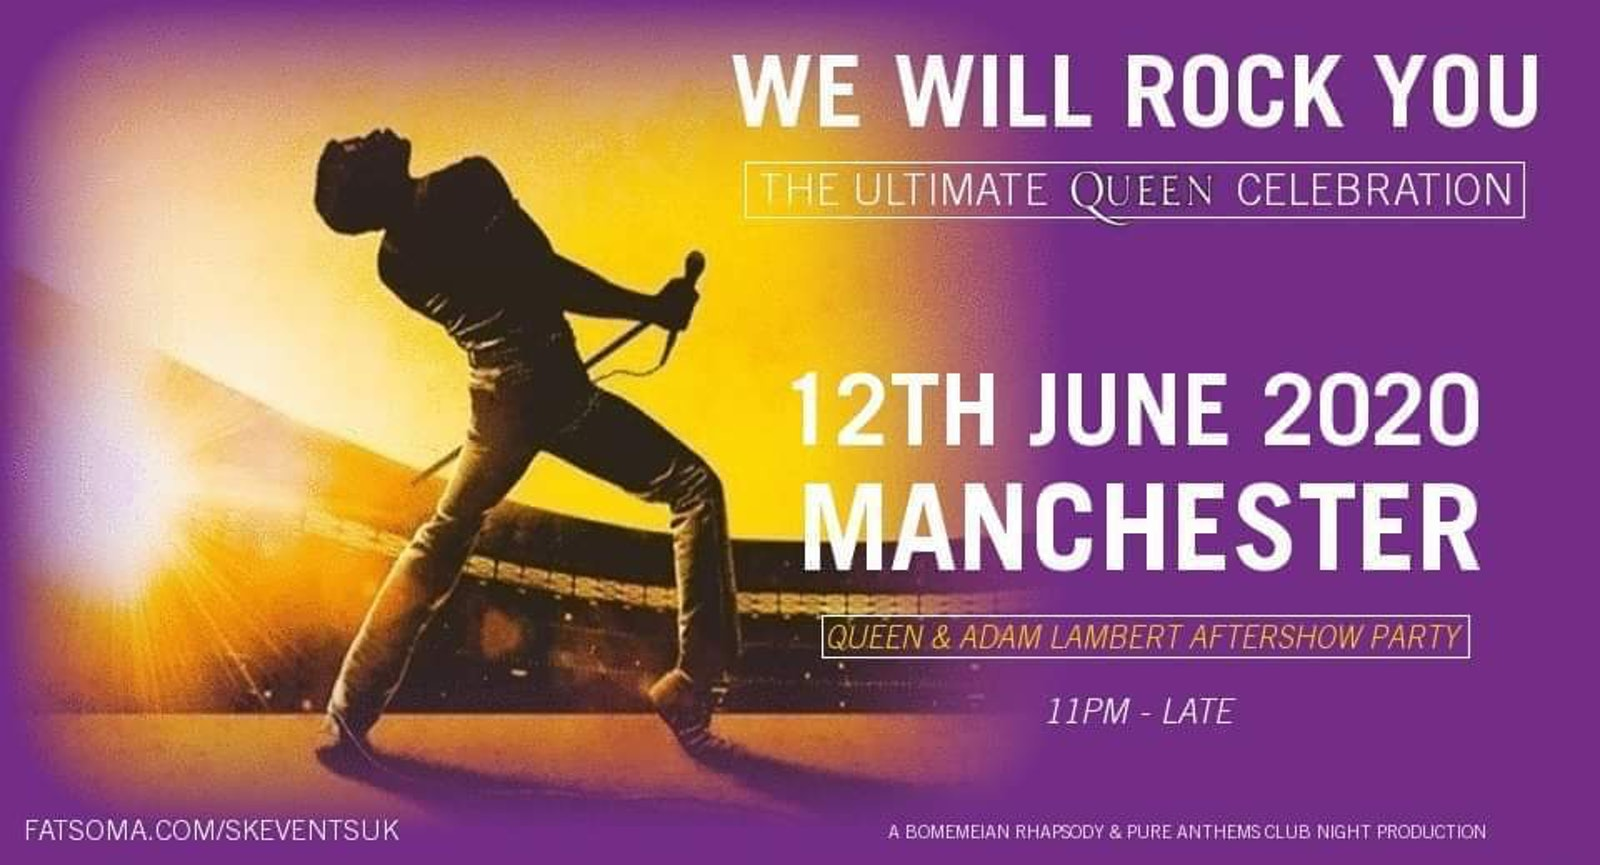 The Ultimate Queen Celebration – Manchester Aftershow Party